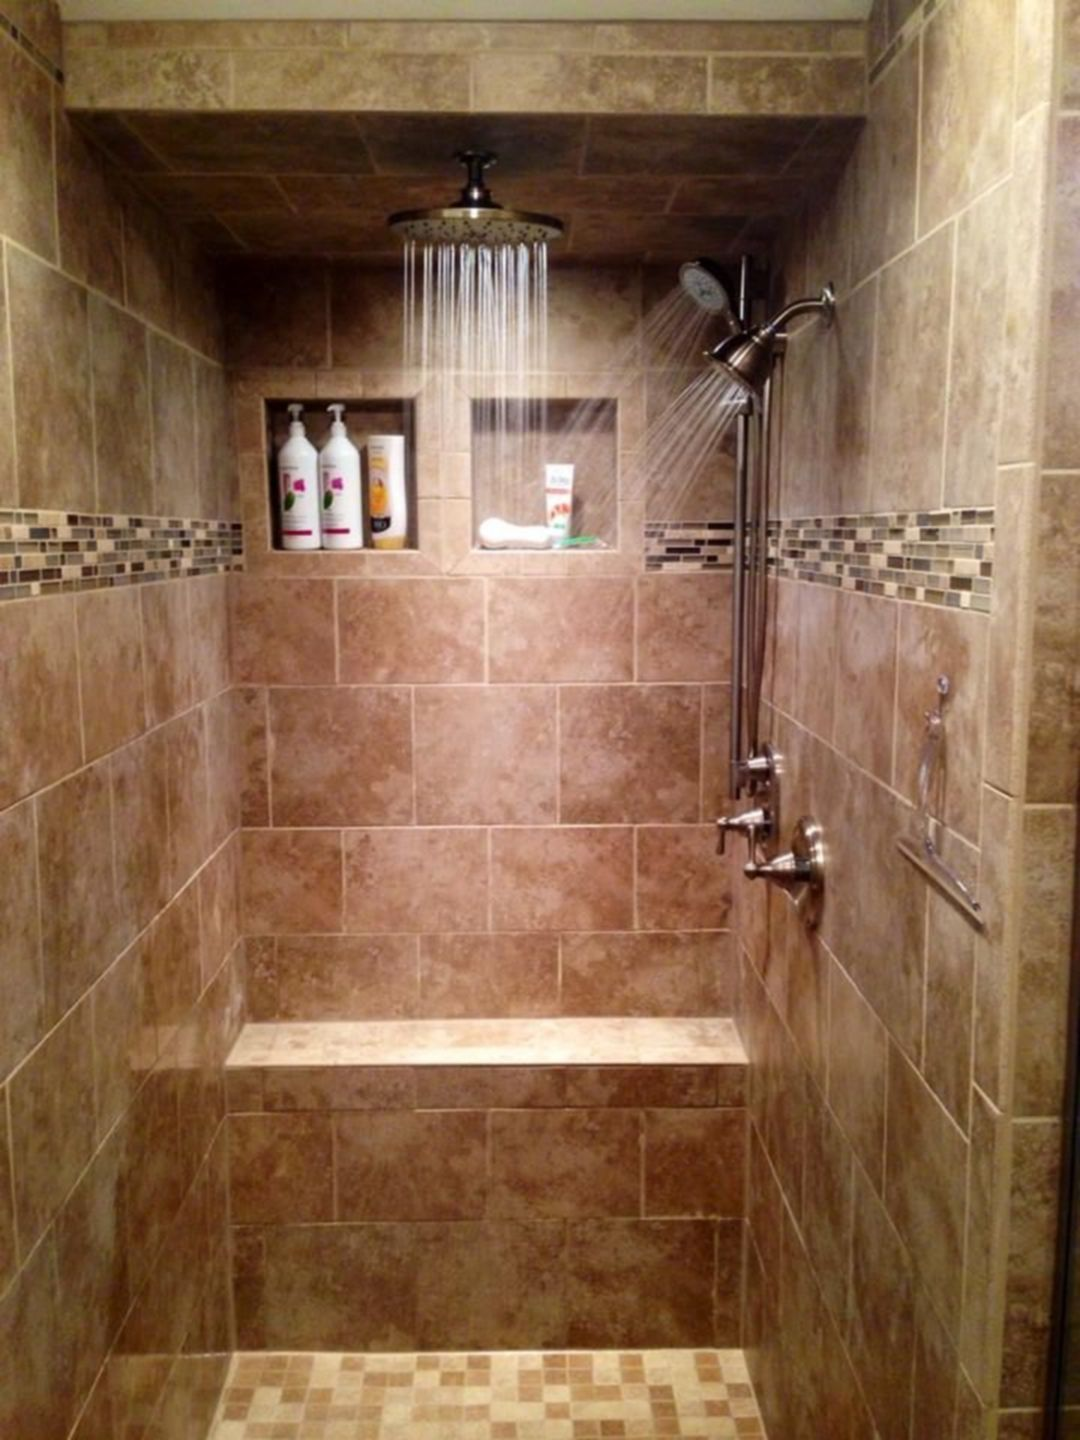 unique shower heads small bathroom remodel pinterestch on beautiful farmhouse bathroom shower decor ideas and remodel an extraordinary design id=33899